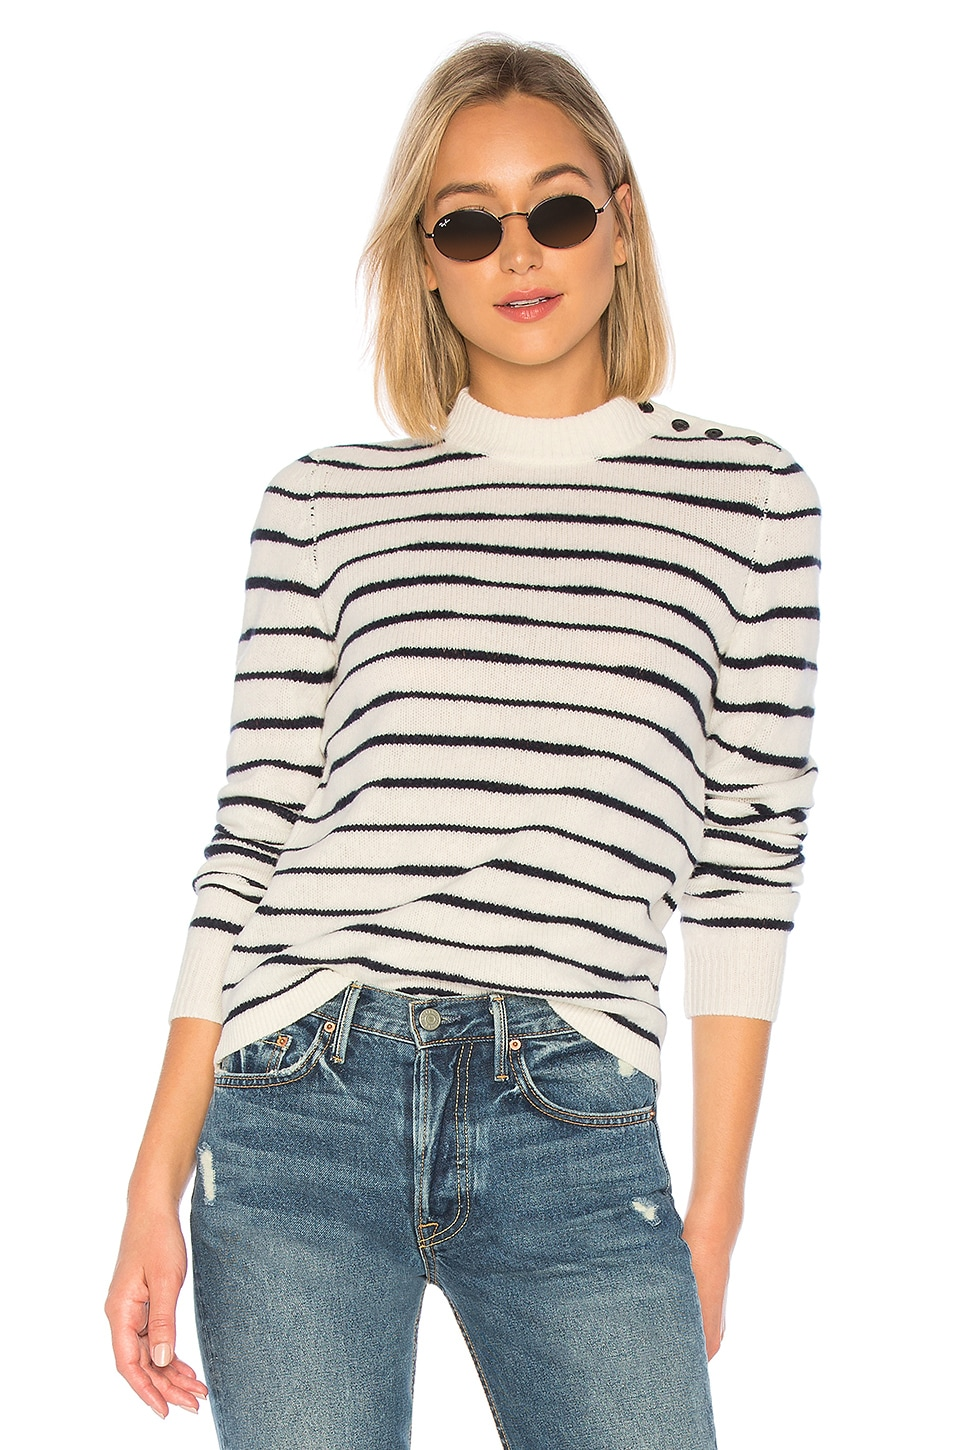 Rag & Bone Sammy Sweater in Ivory & Navy